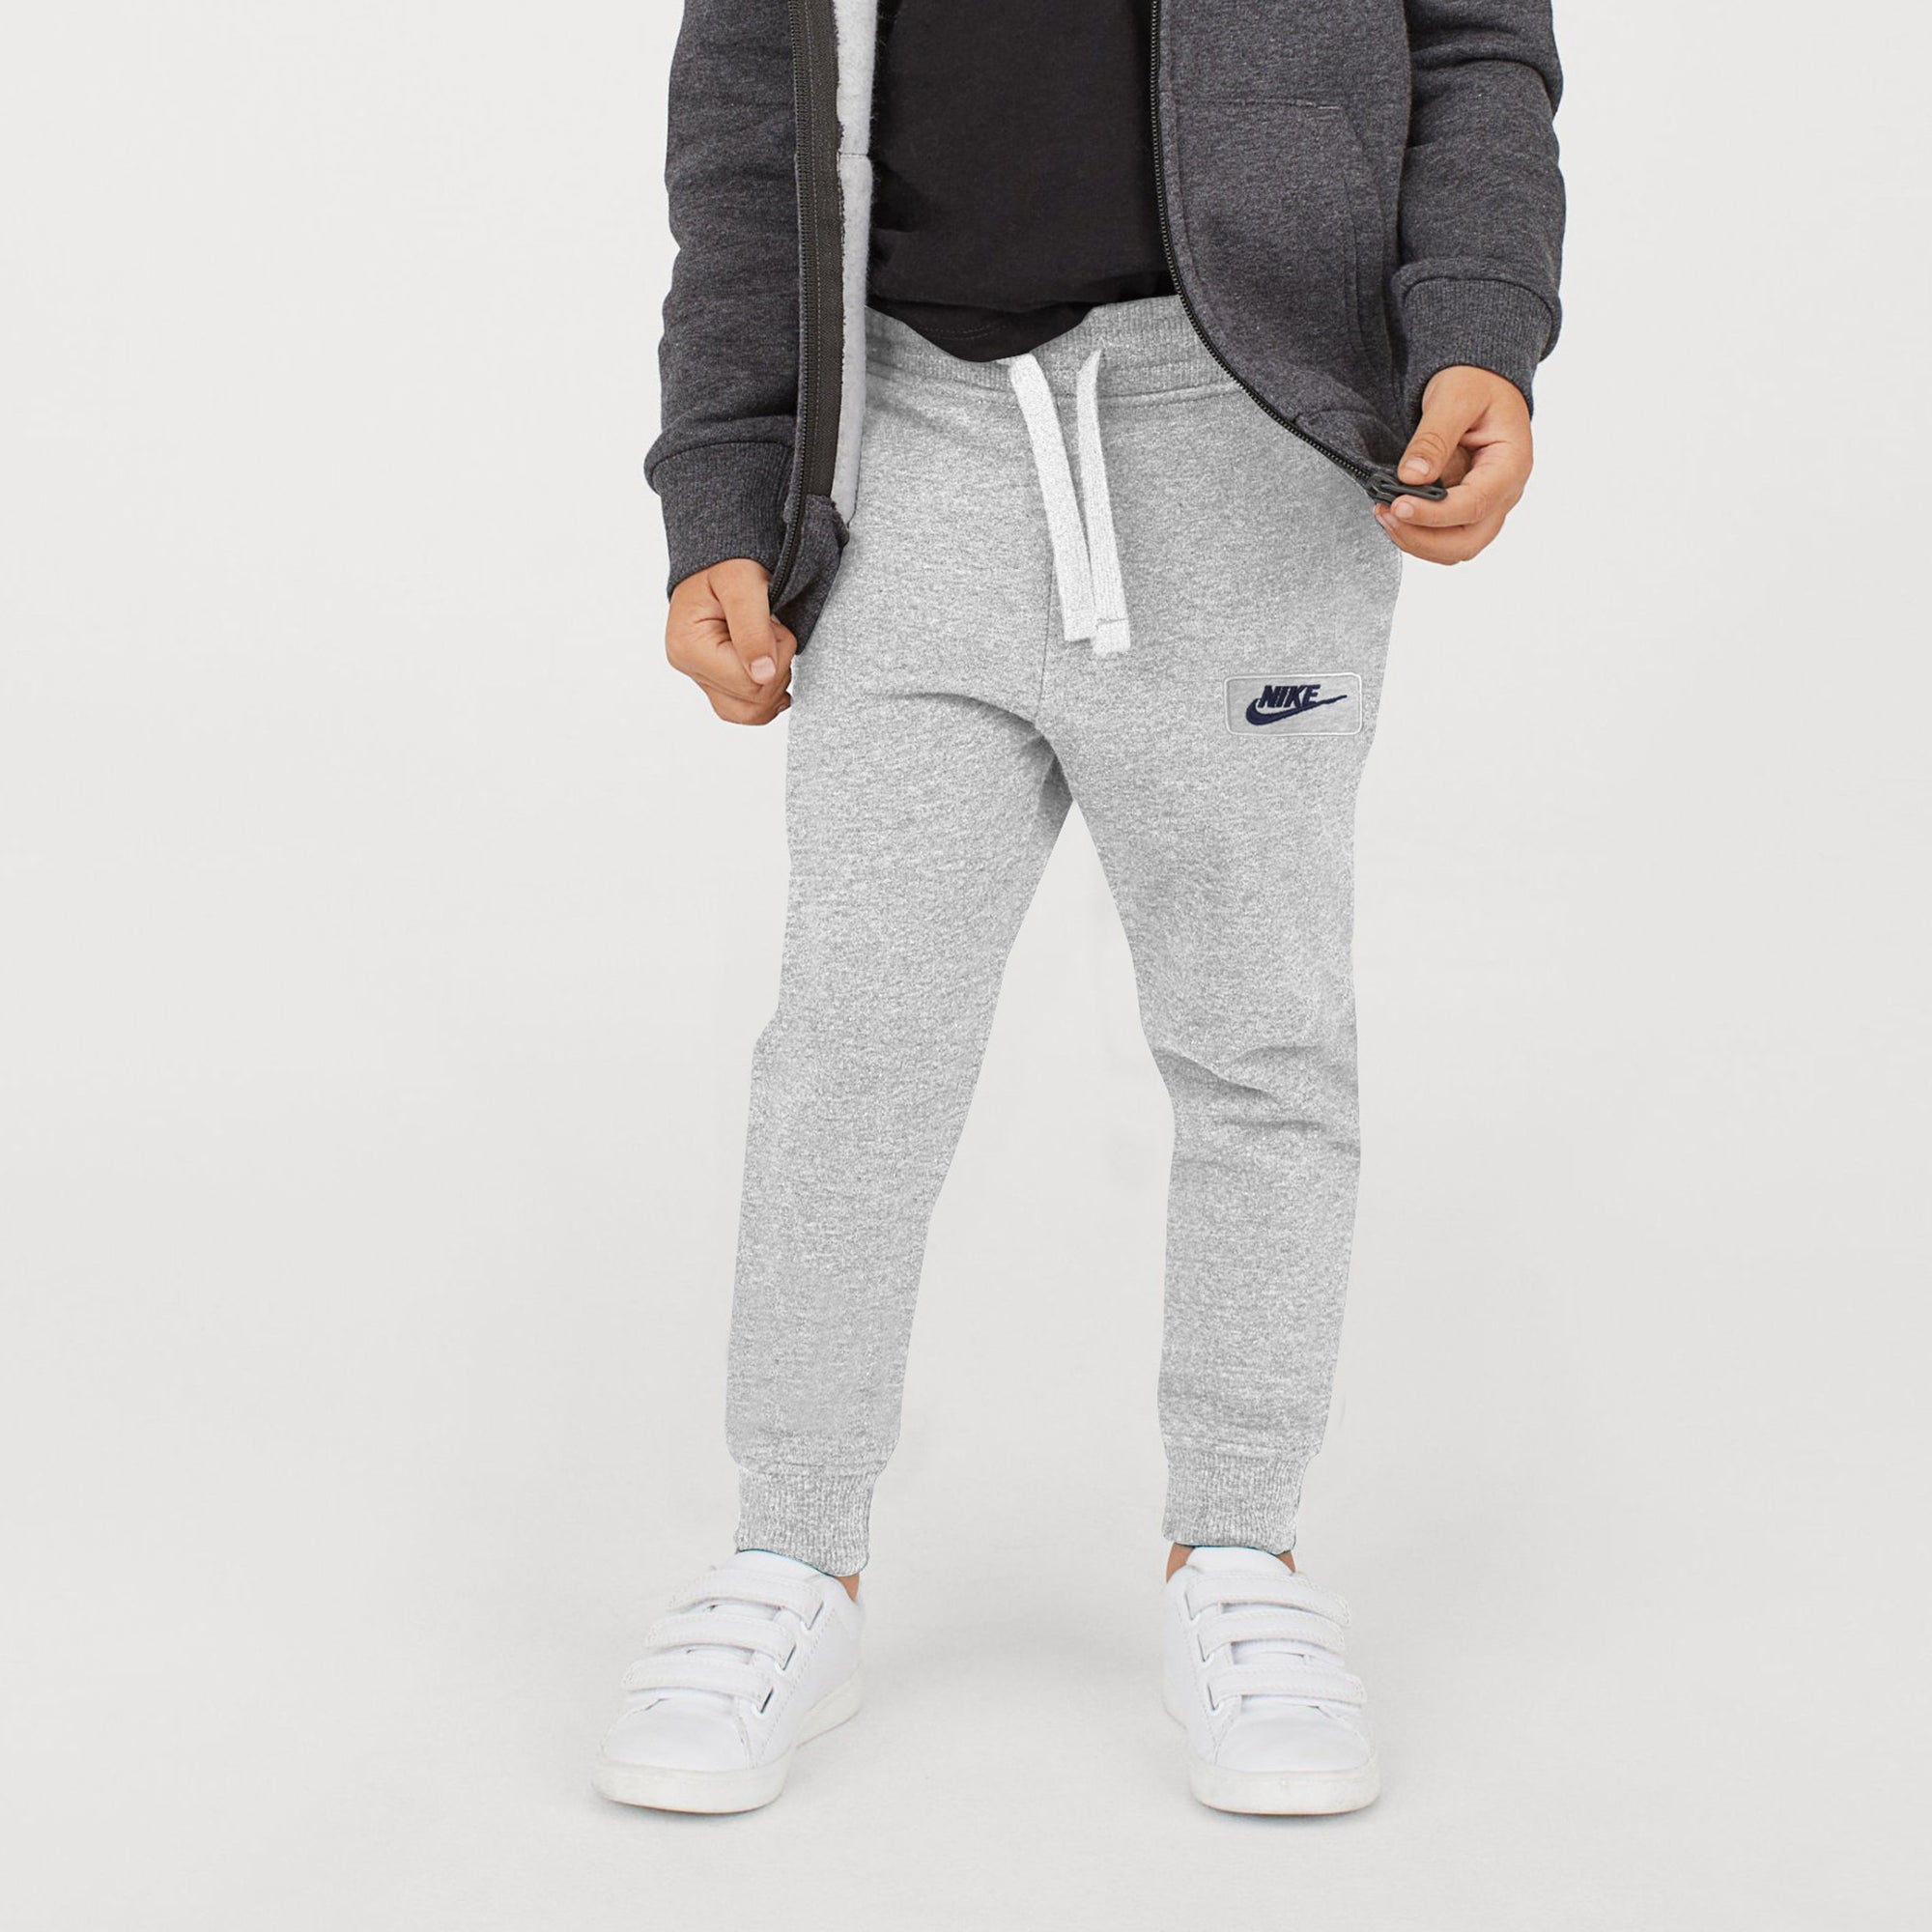 NK Terry Fleece Jogger Trouser For Boys-Grey Melange-SP1063